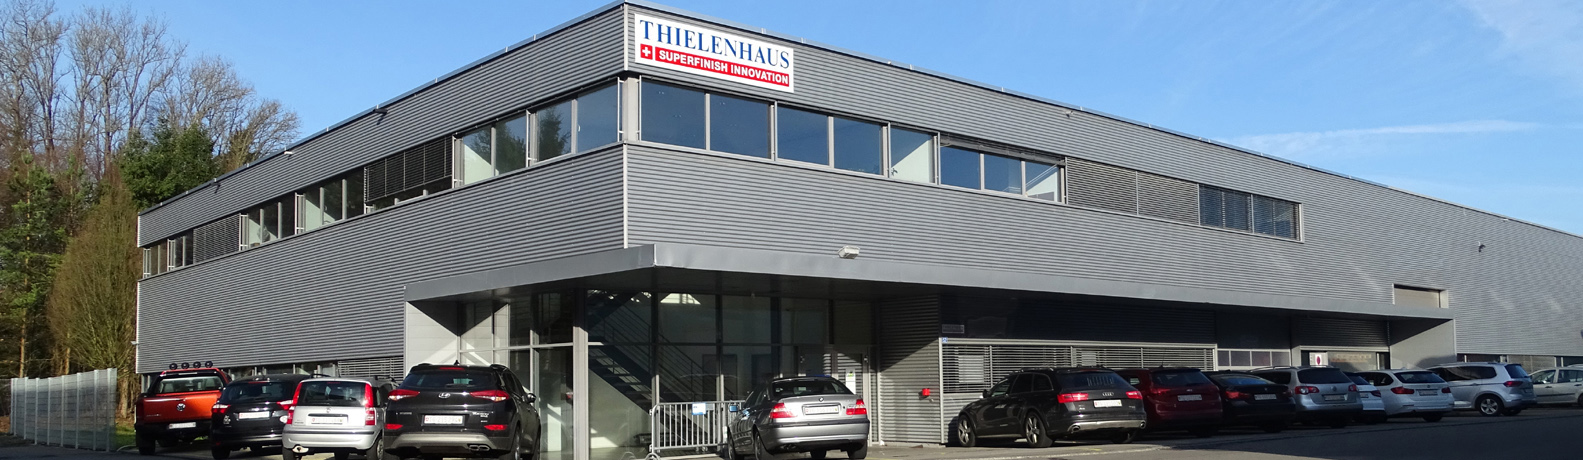 Thielenhaus Superfinish Innovation | Slider image 1